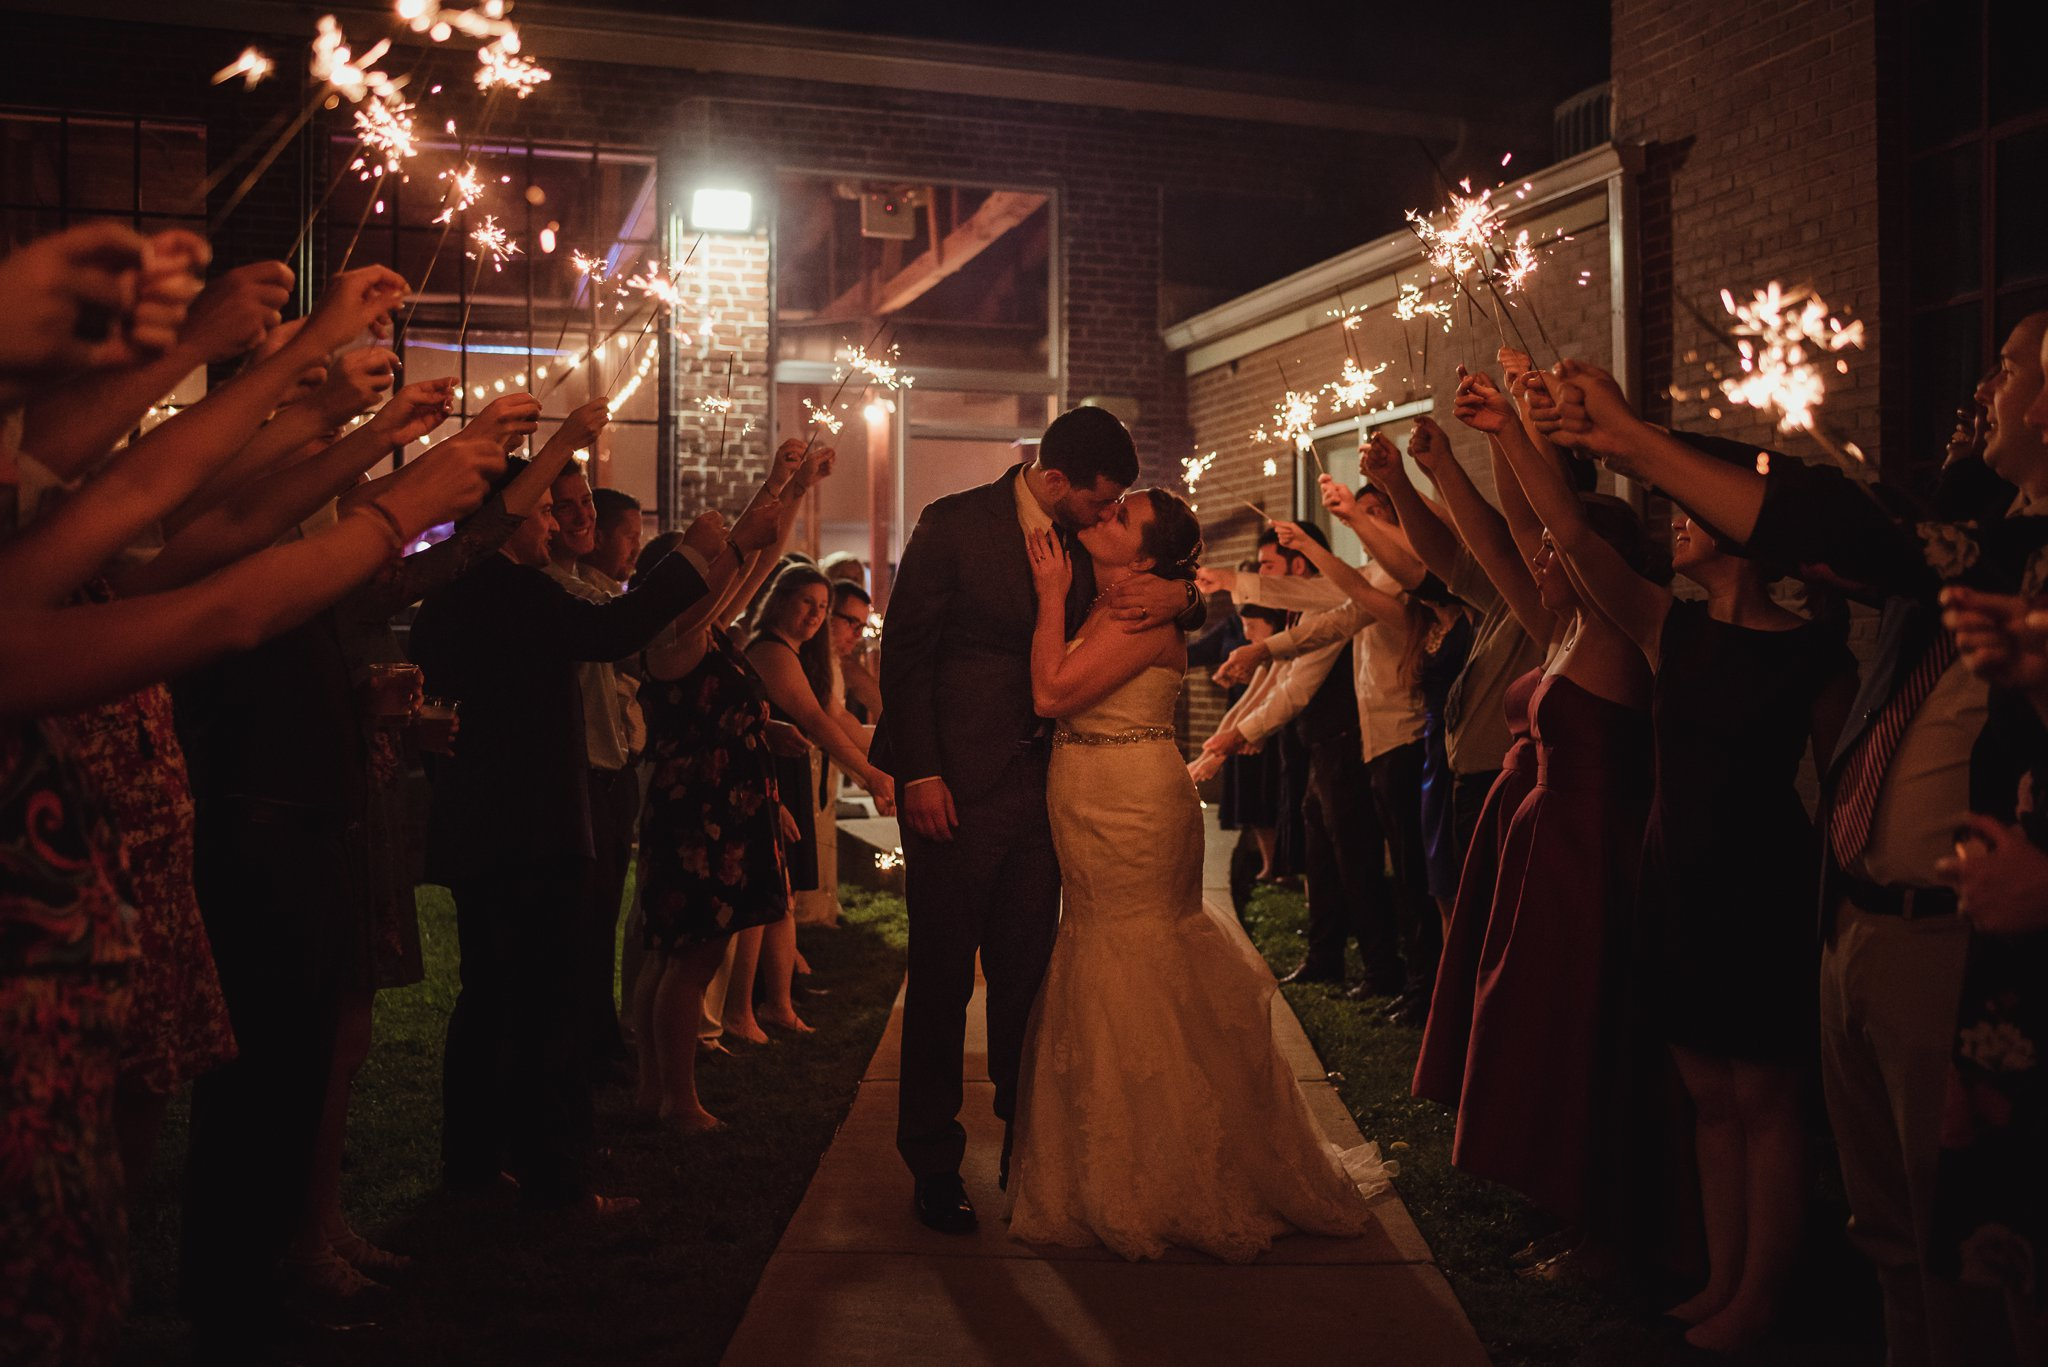 The bride and groom kissed under the sparklers during their sparkler exit at their wedding reception in Raleigh, North Carolina, pictures by Rose Trail Images.